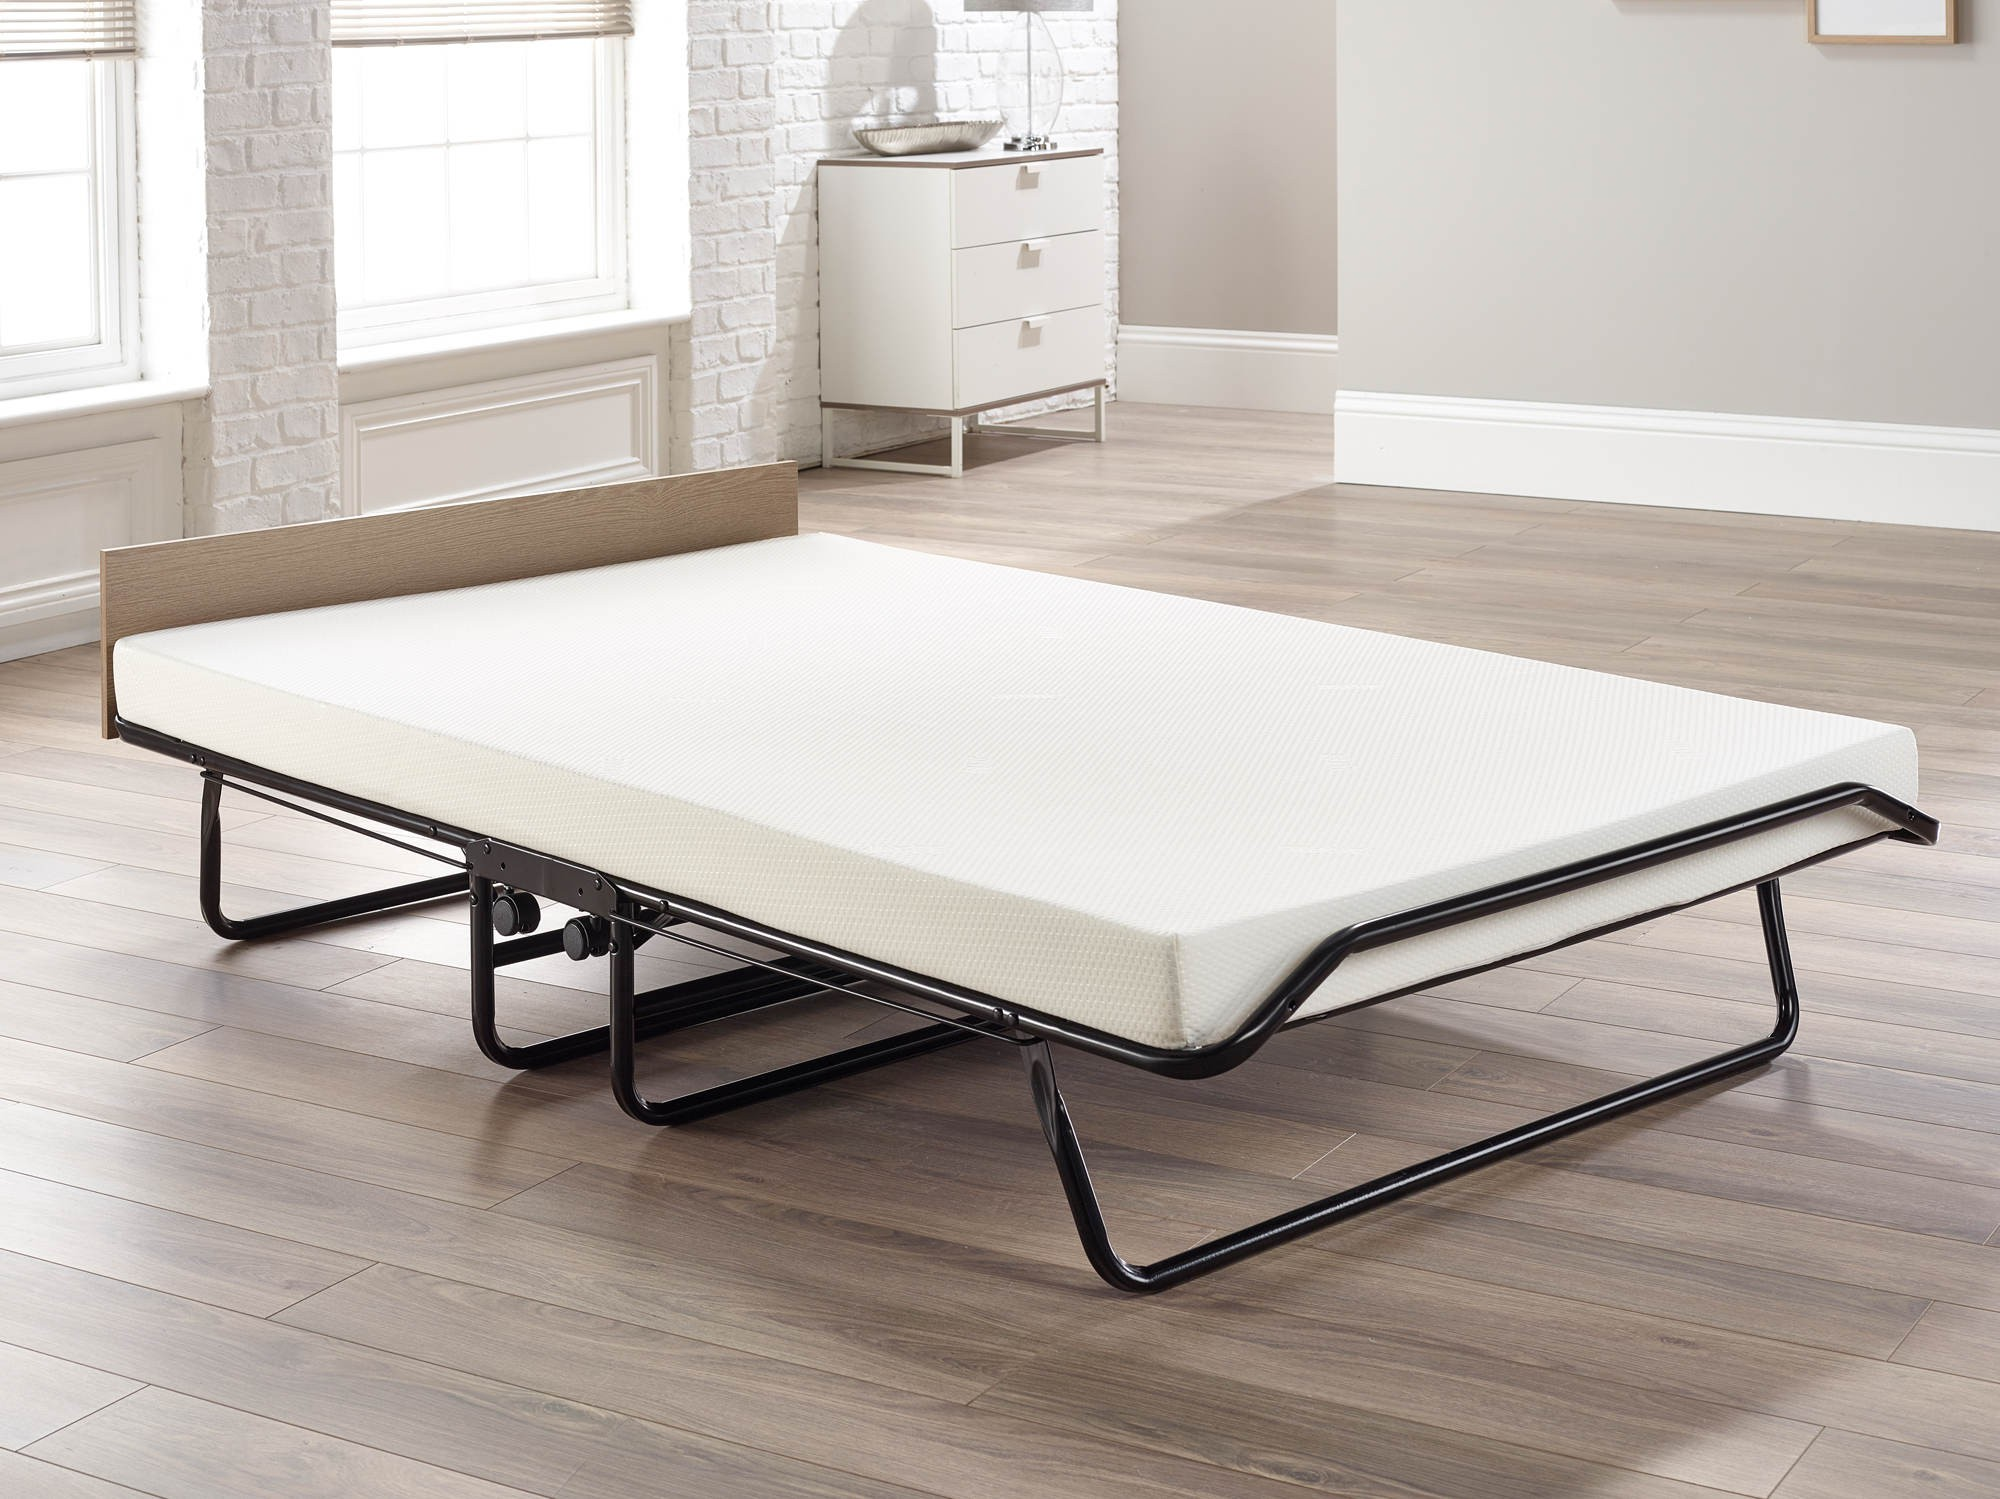 value comfort guest mattress ber with jay jb to image expand be click double fibre bed folding breathable